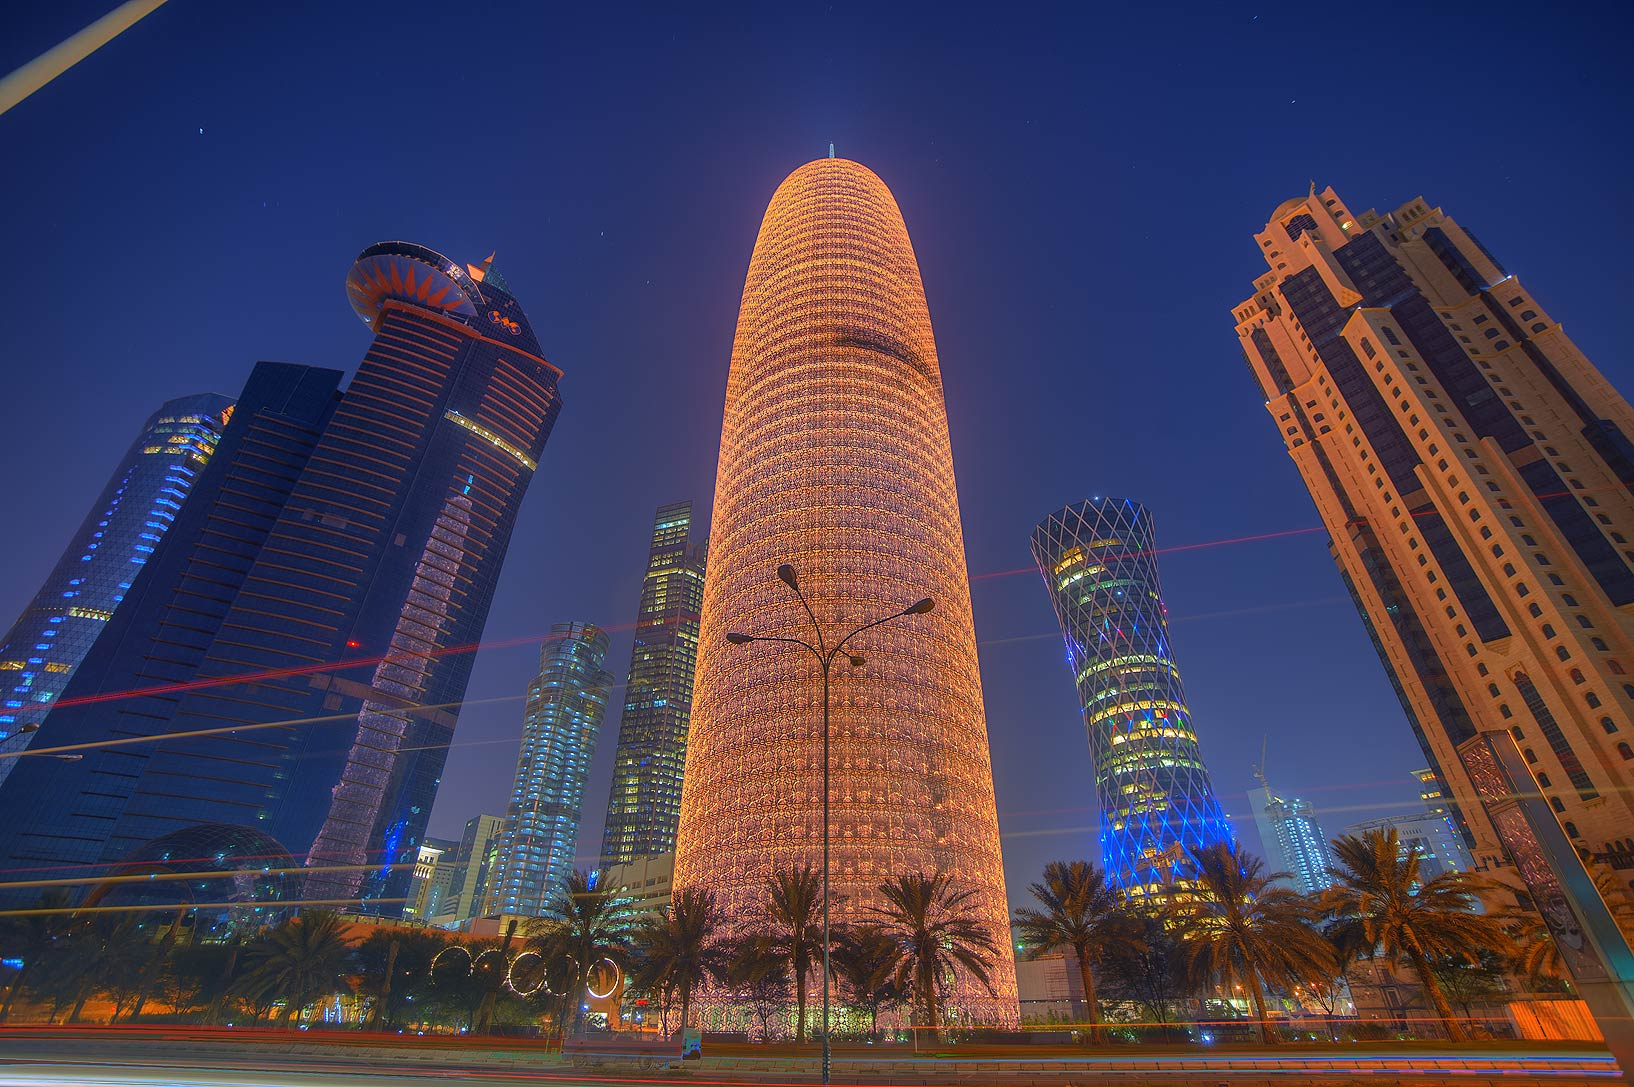 View of Burj Qatar Tower in West Bay from Corniche promenade. Doha, Qatar